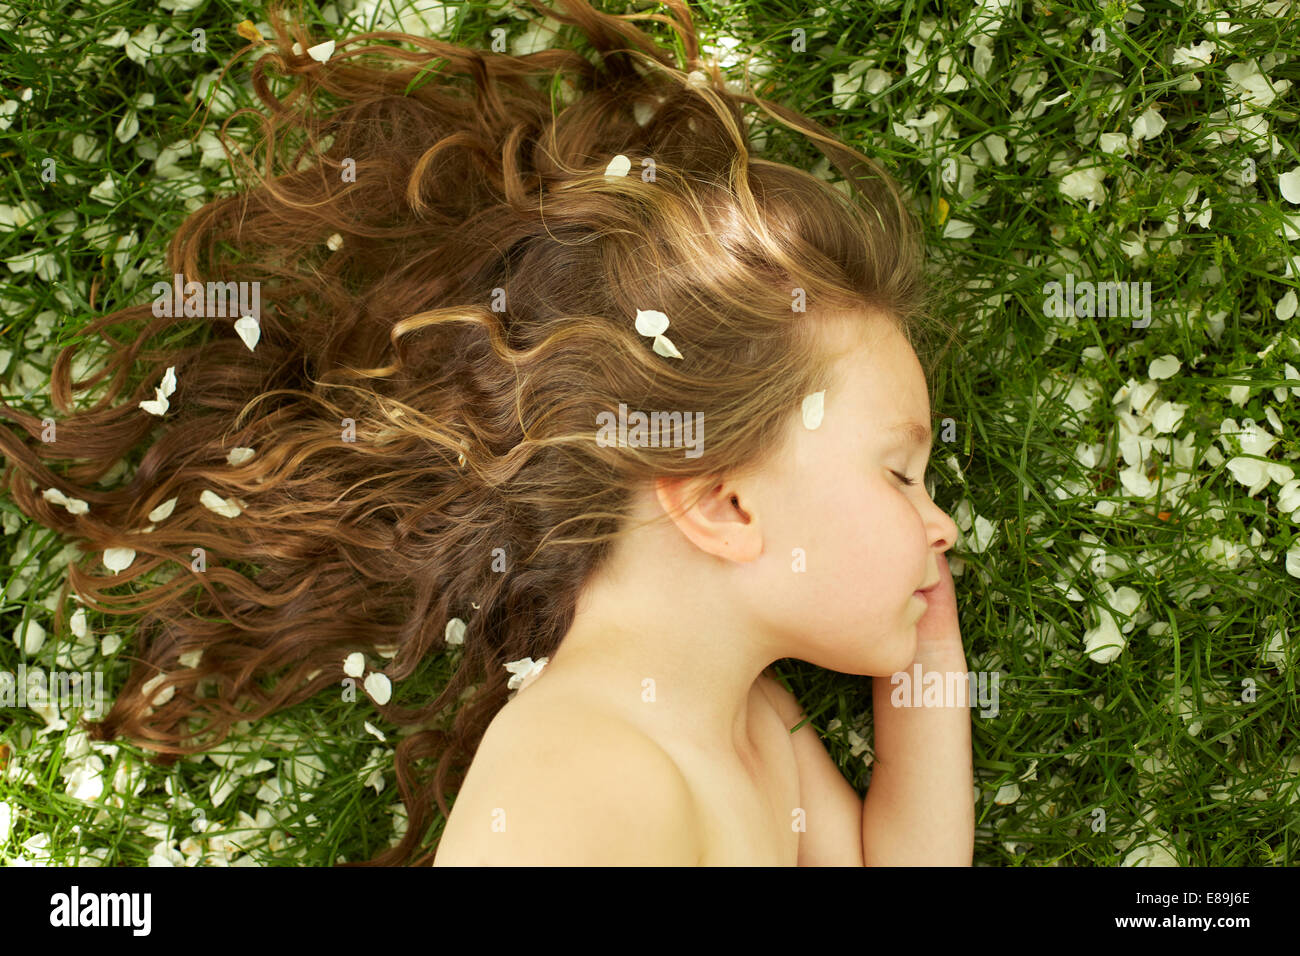 Girl sleeping in field with flower petals - Stock Image